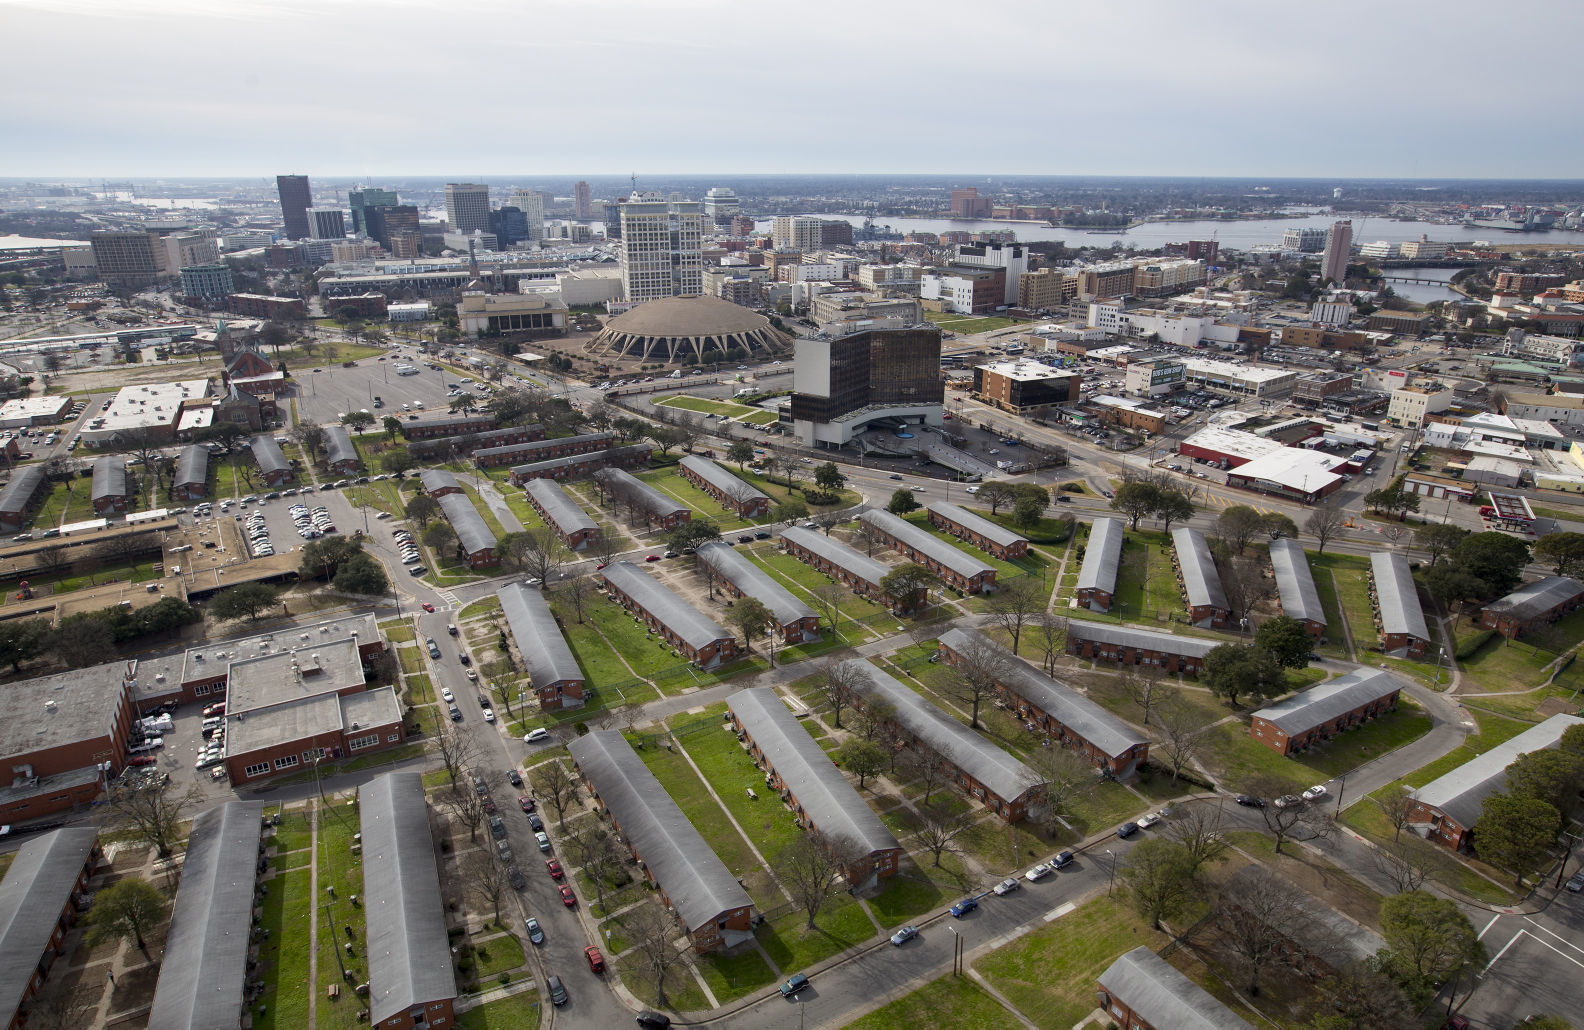 Norfolk promised to help people forced out of public housing